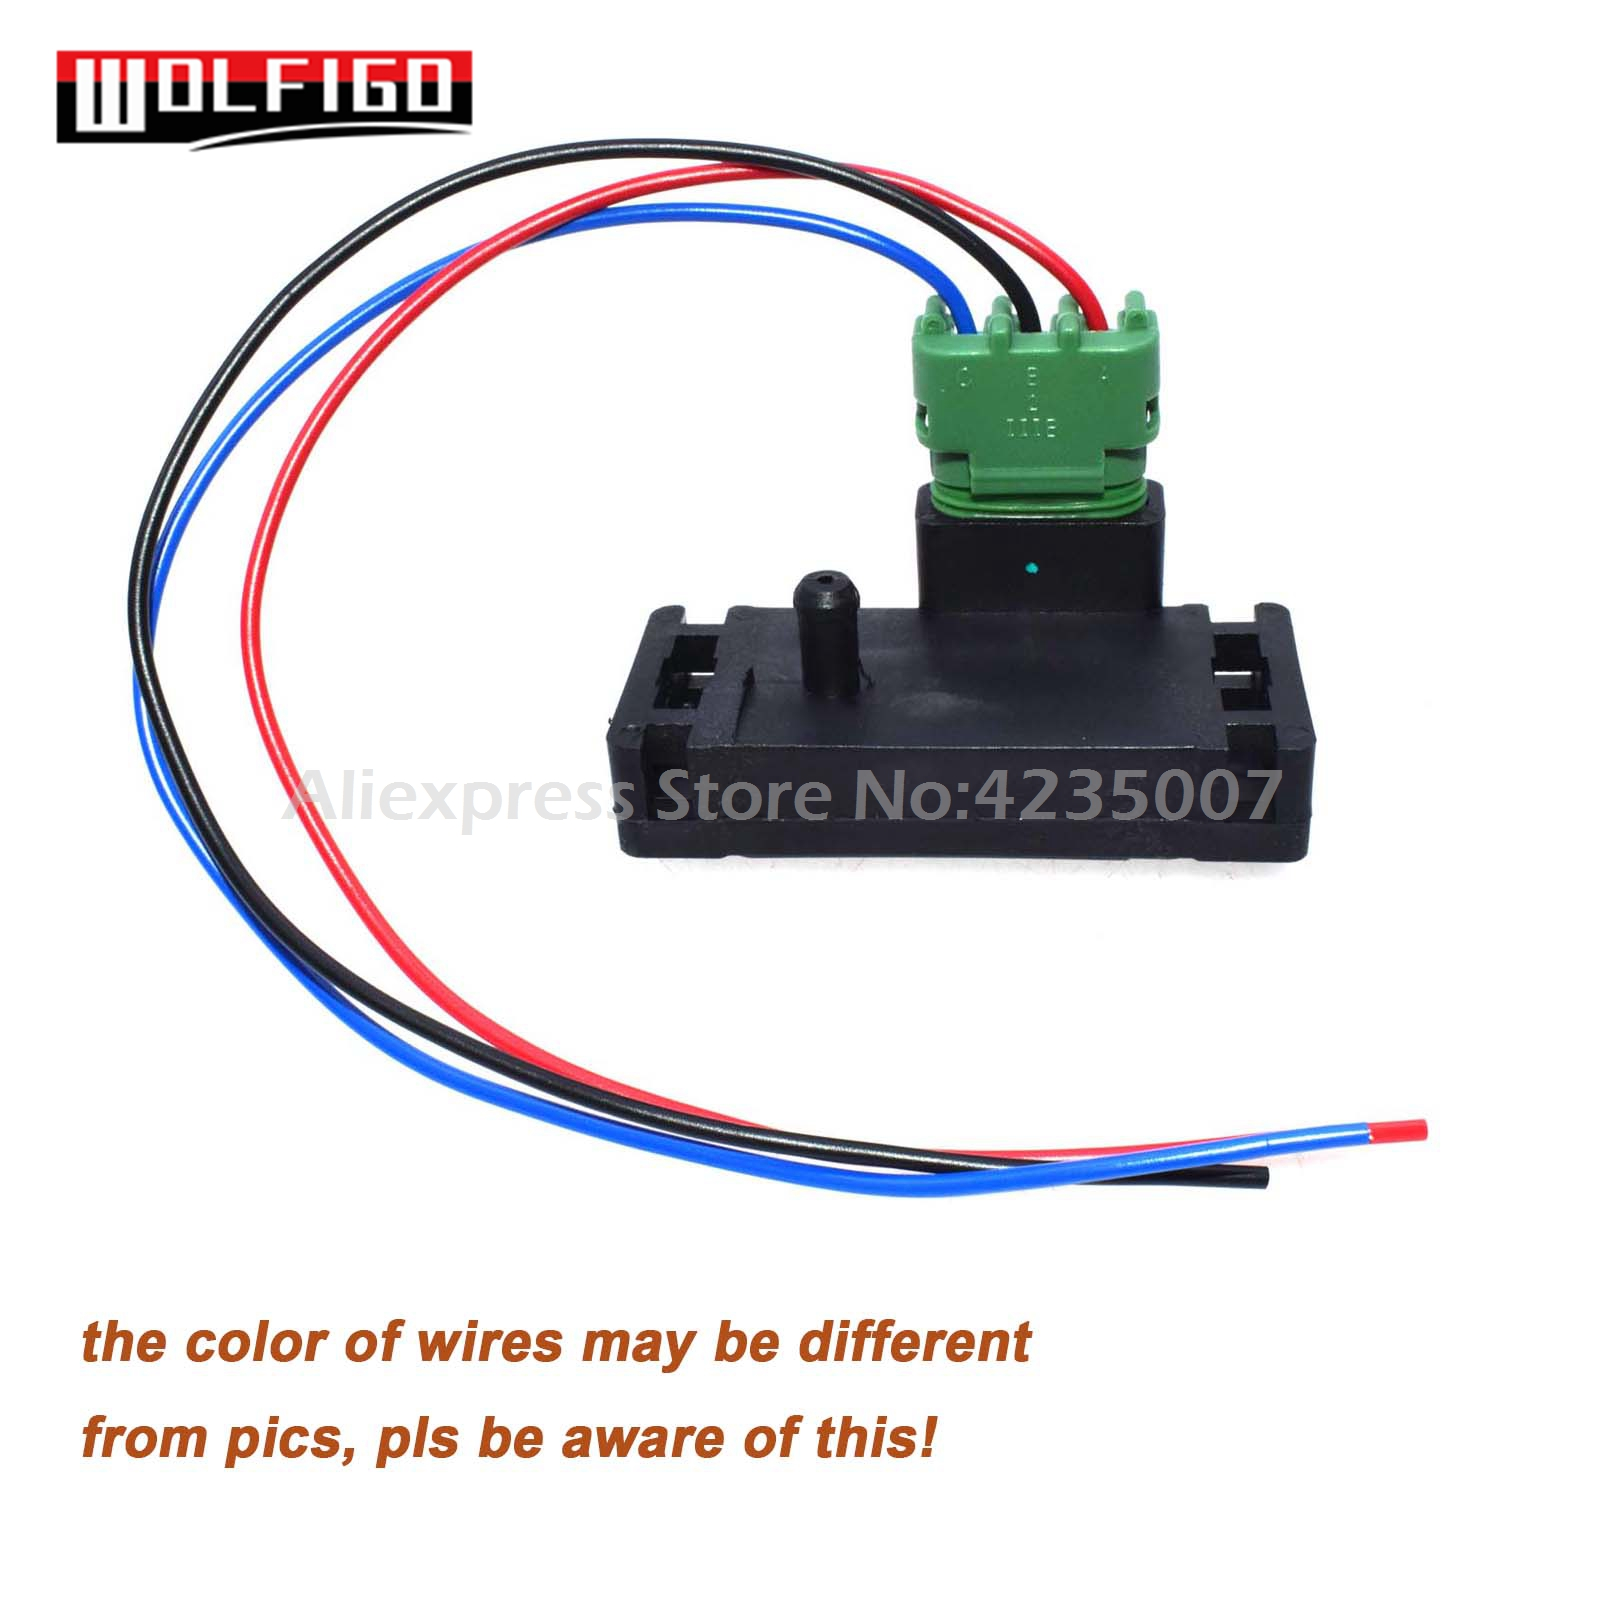 medium resolution of wolfigo new 1 bar map sensor with pigtail connector plug wire 16040749 12223861 for chevy